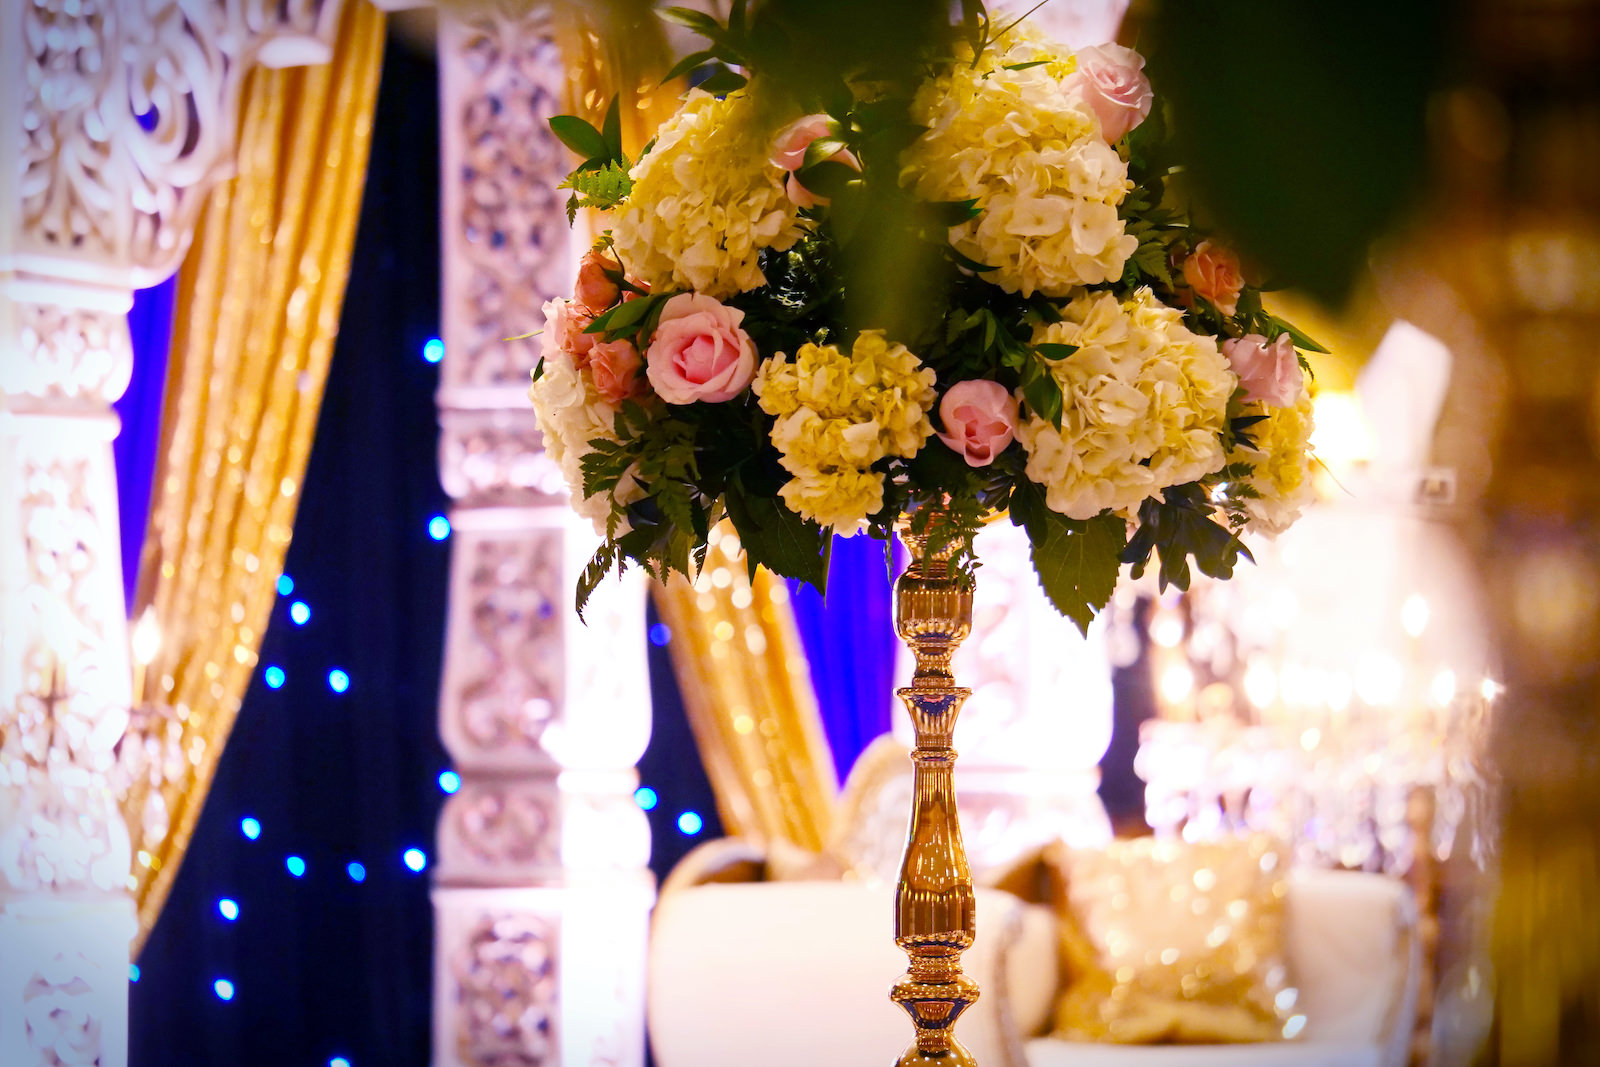 Tall Gold Candlestick Centerpiece with Pink Roses and Ivory Hydrangea | Clearwater Indian Wedding Reception Inspiration